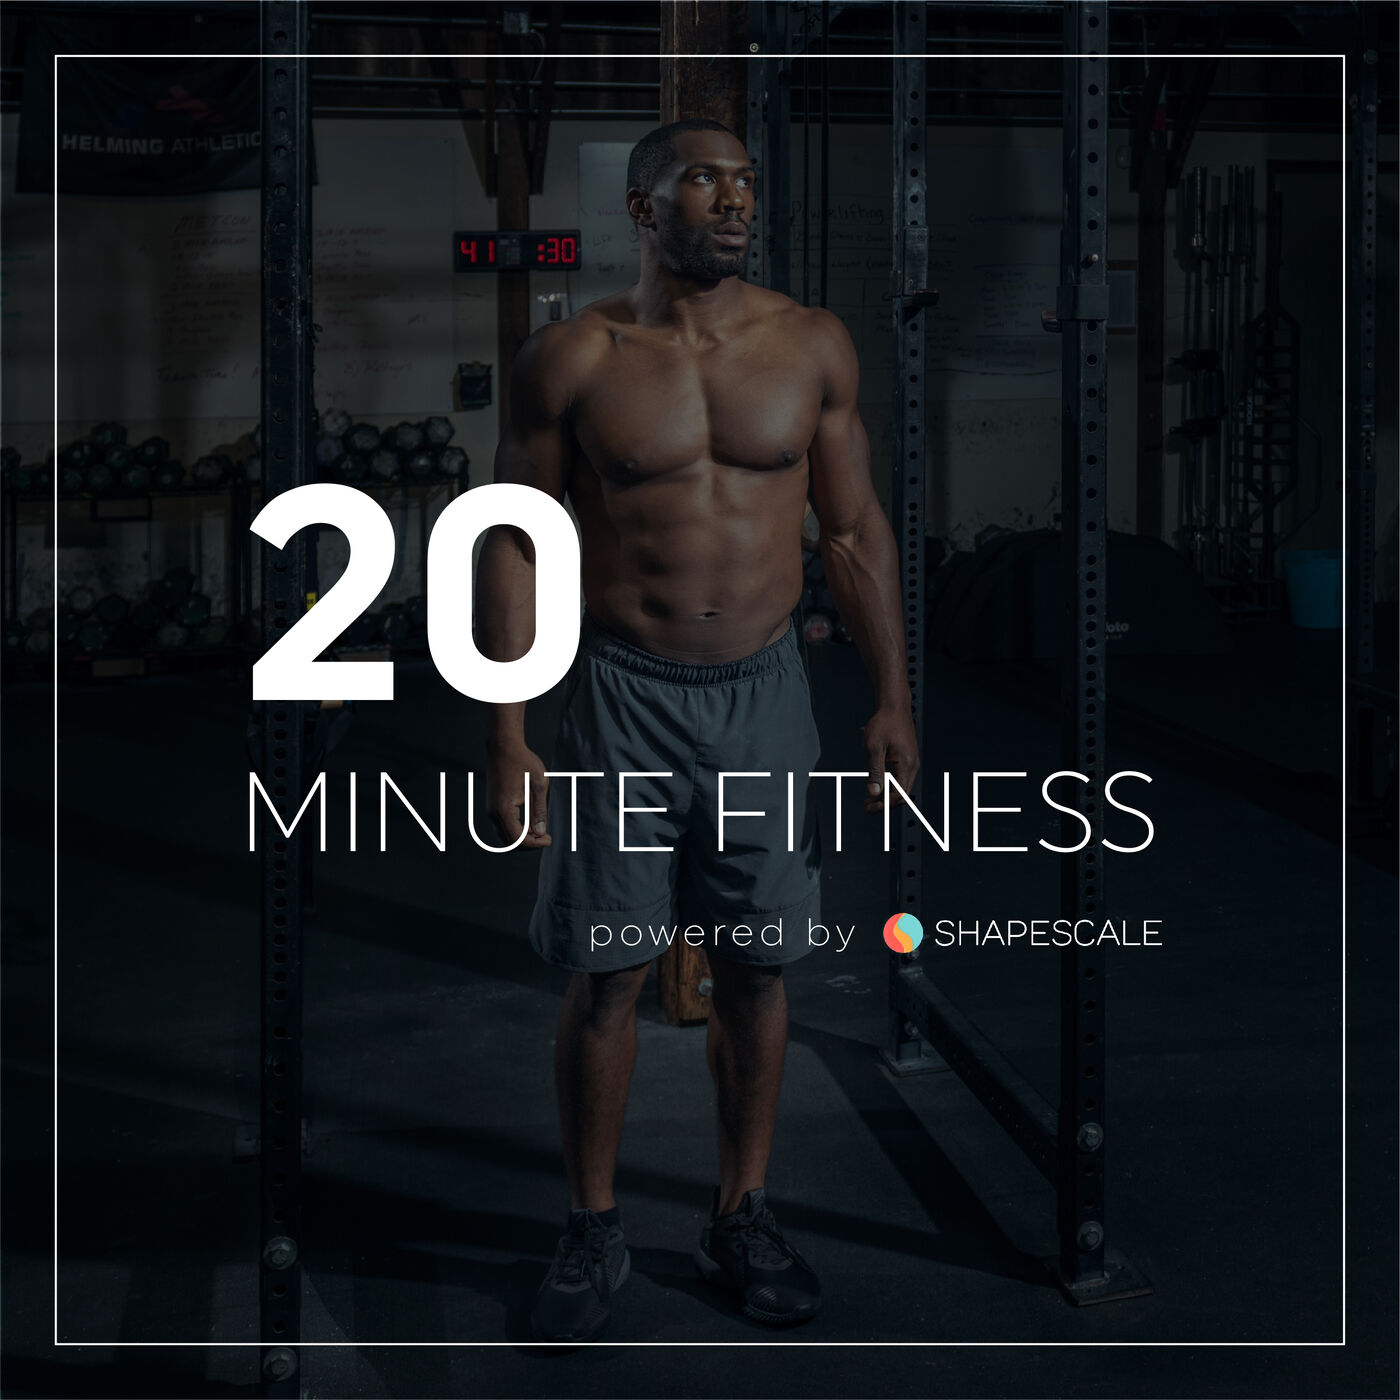 Martin's Body Transformation Story: Intro - 20 Minutes Fitness Episode #234